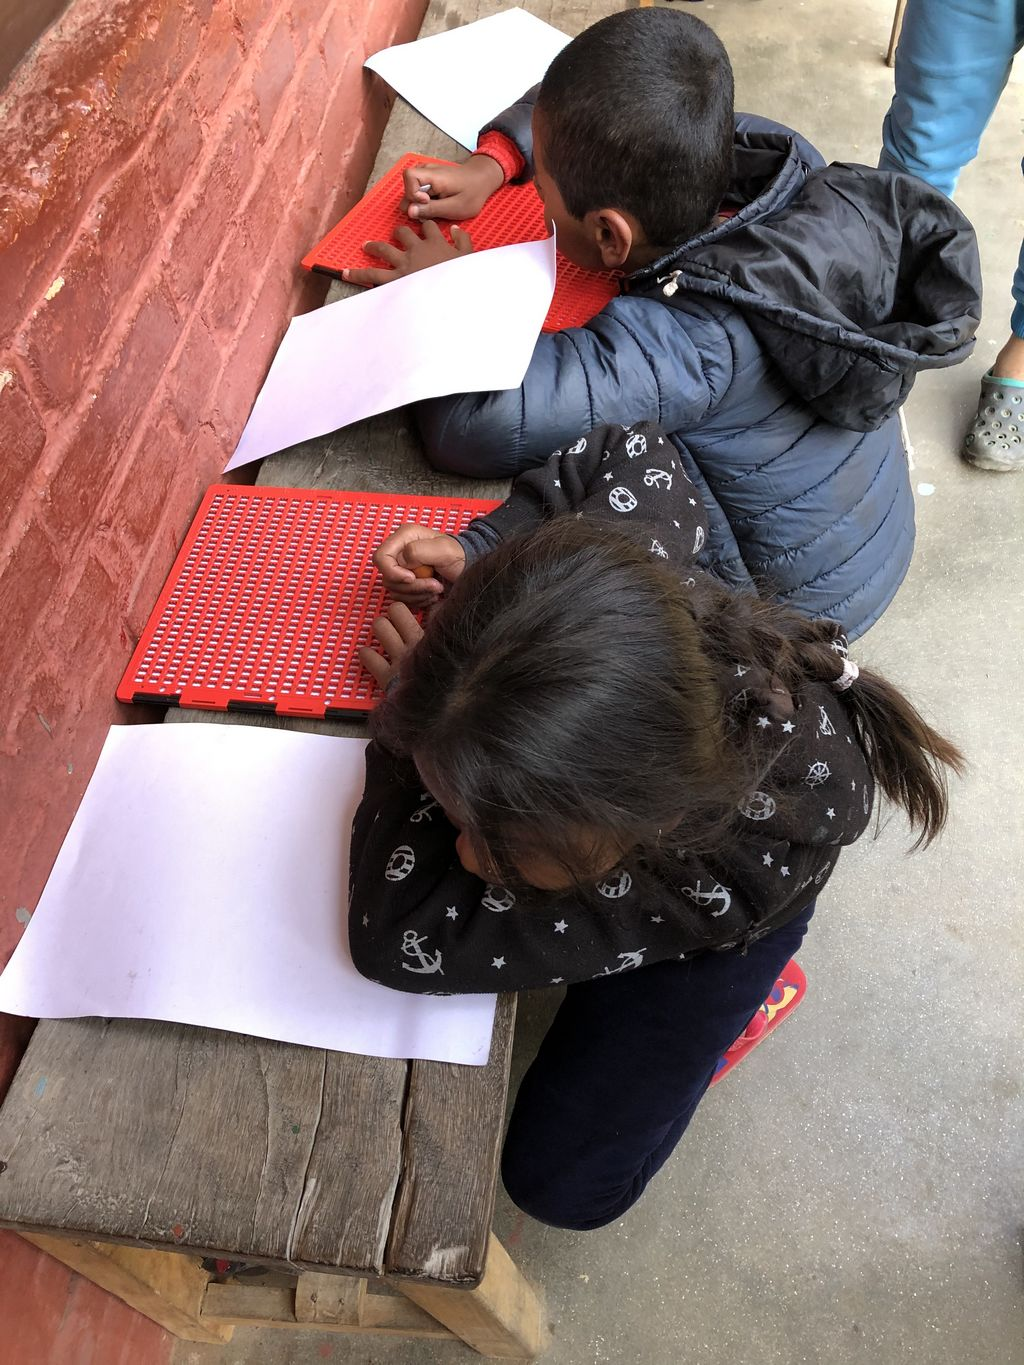 Children with visual impairments doing their homework